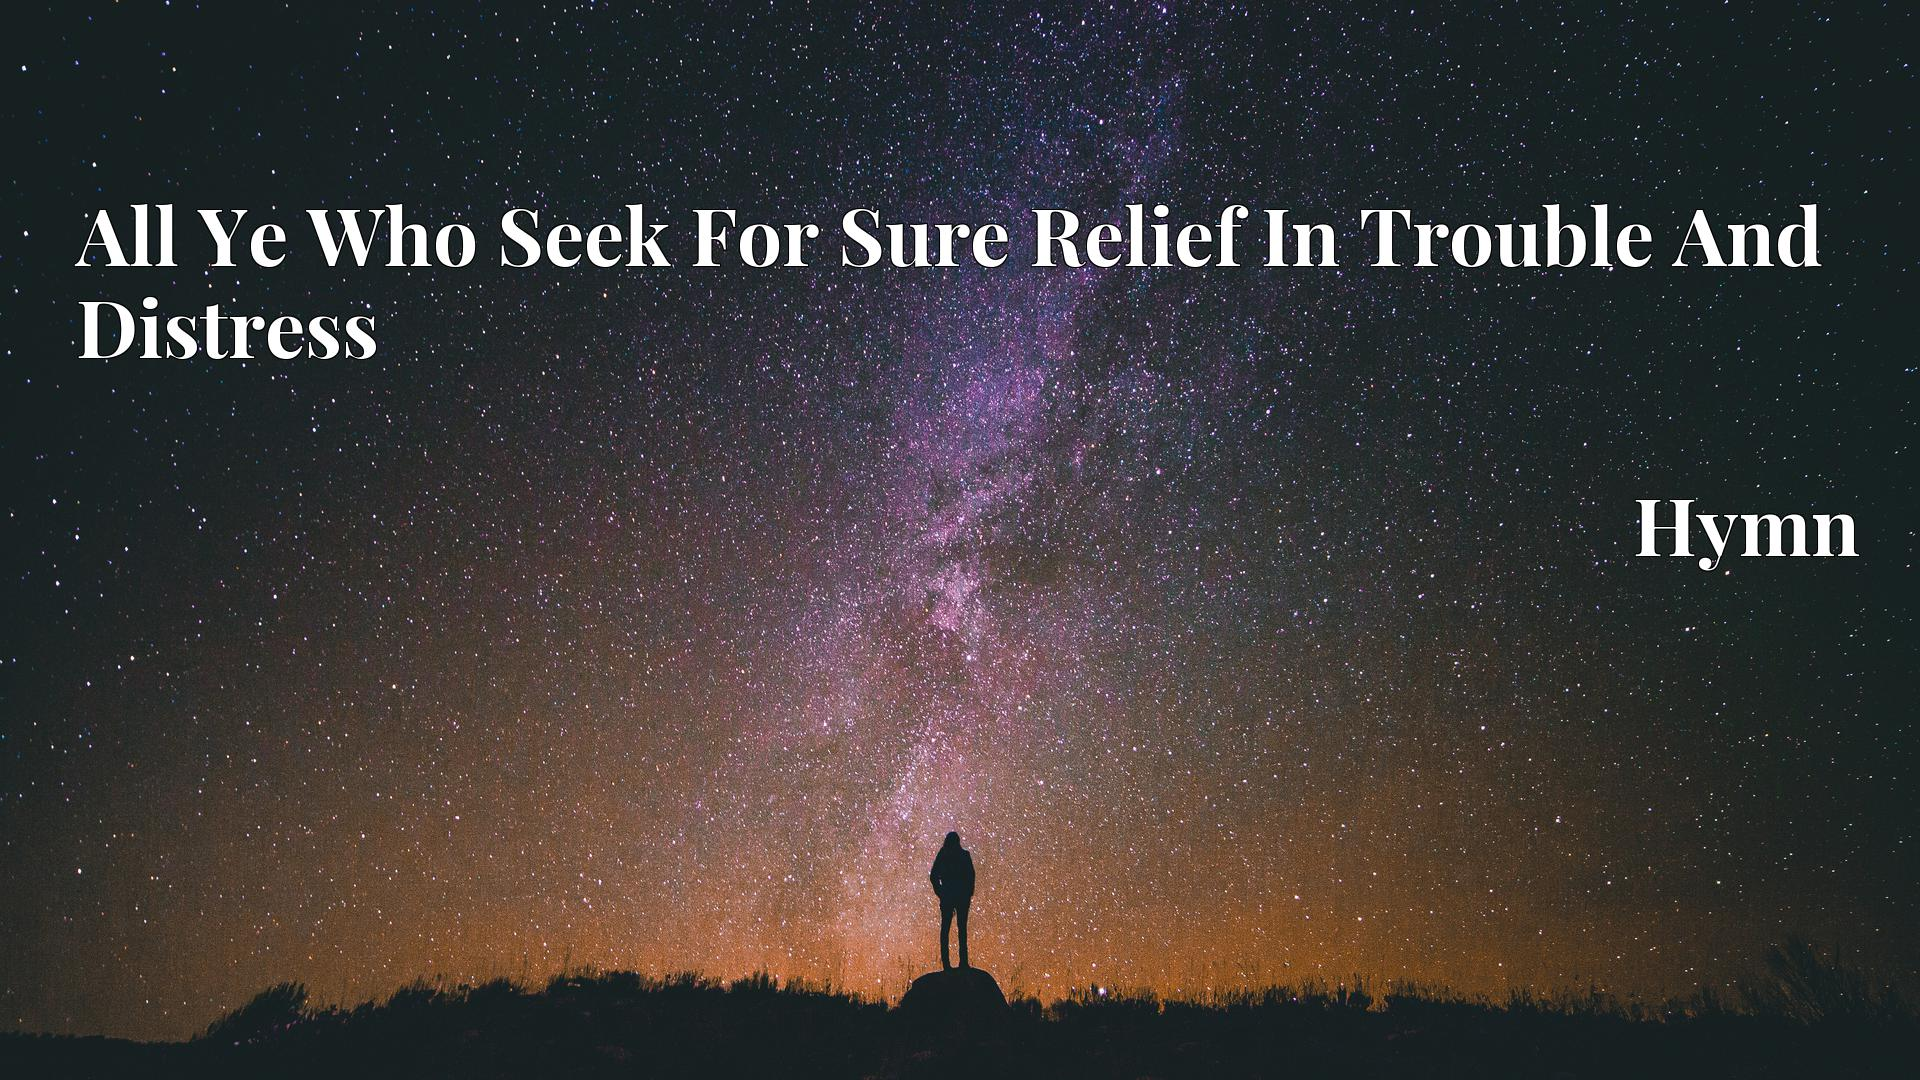 All Ye Who Seek For Sure Relief In Trouble And Distress - Hymn